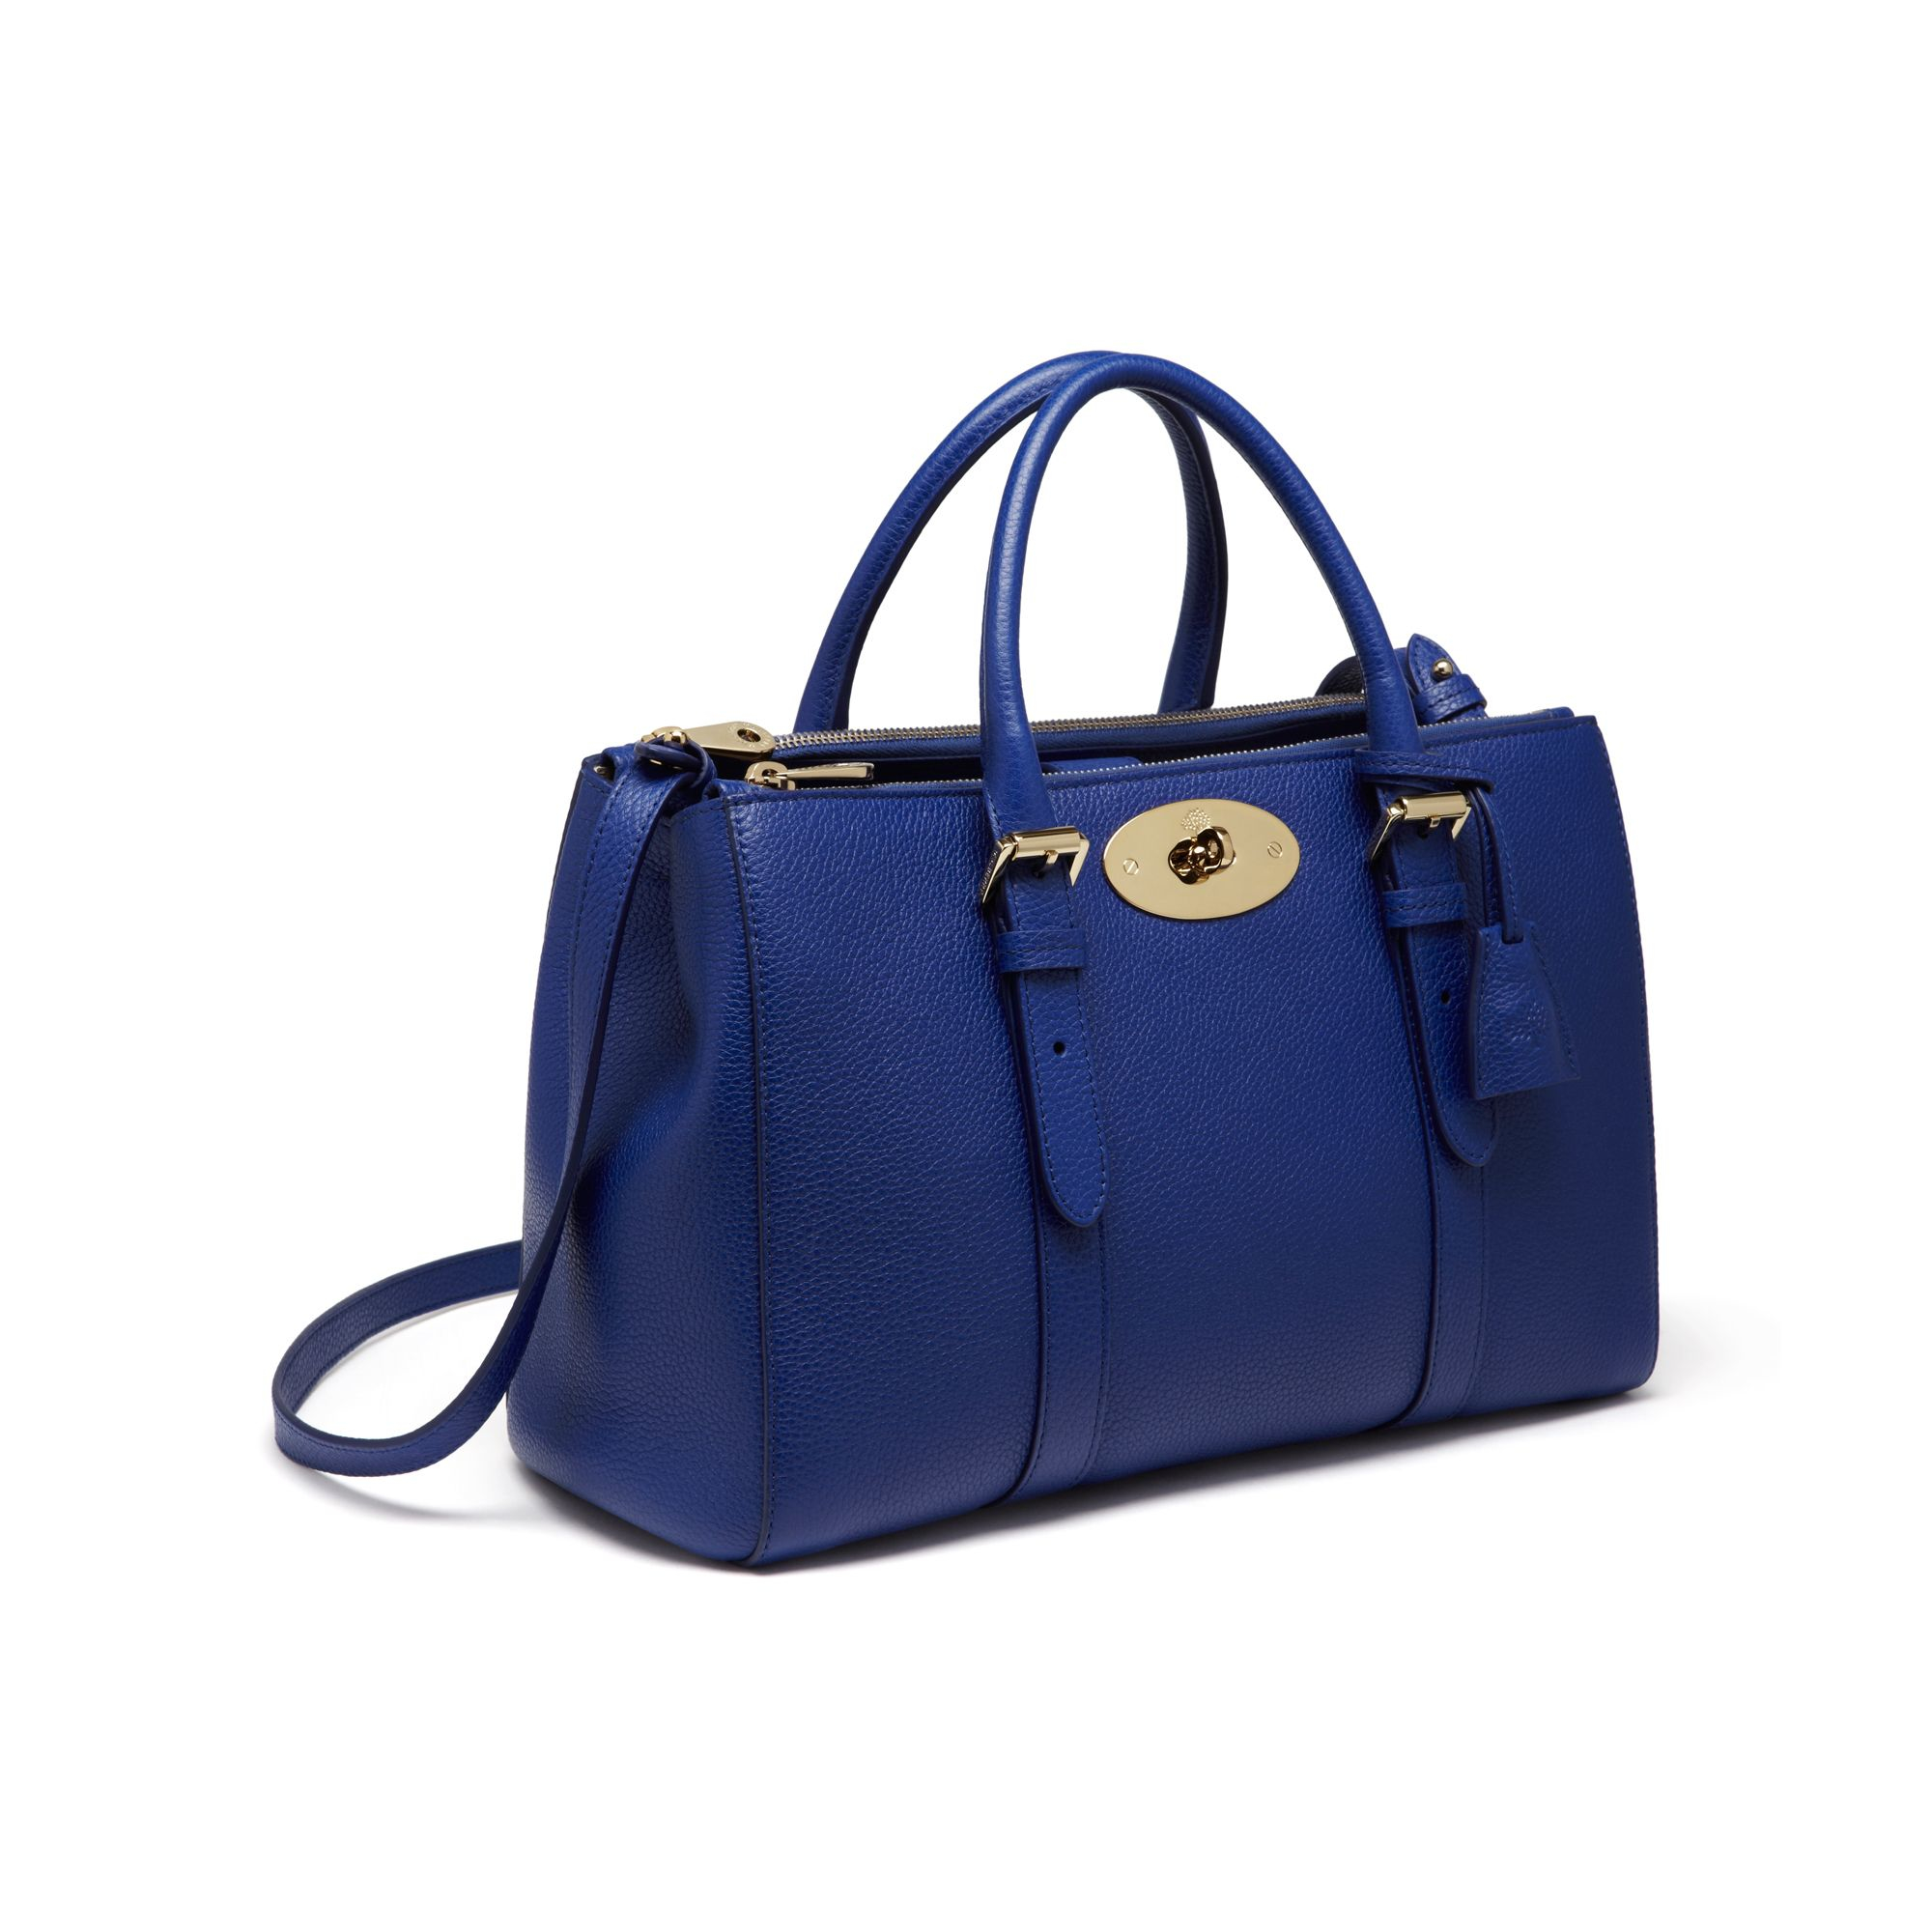 5f28401497e5 best price mulberry small bayswater satchel in blue lyst 619d3 81f21  good  gallery. womens mulberry bayswater 17d19 6db45